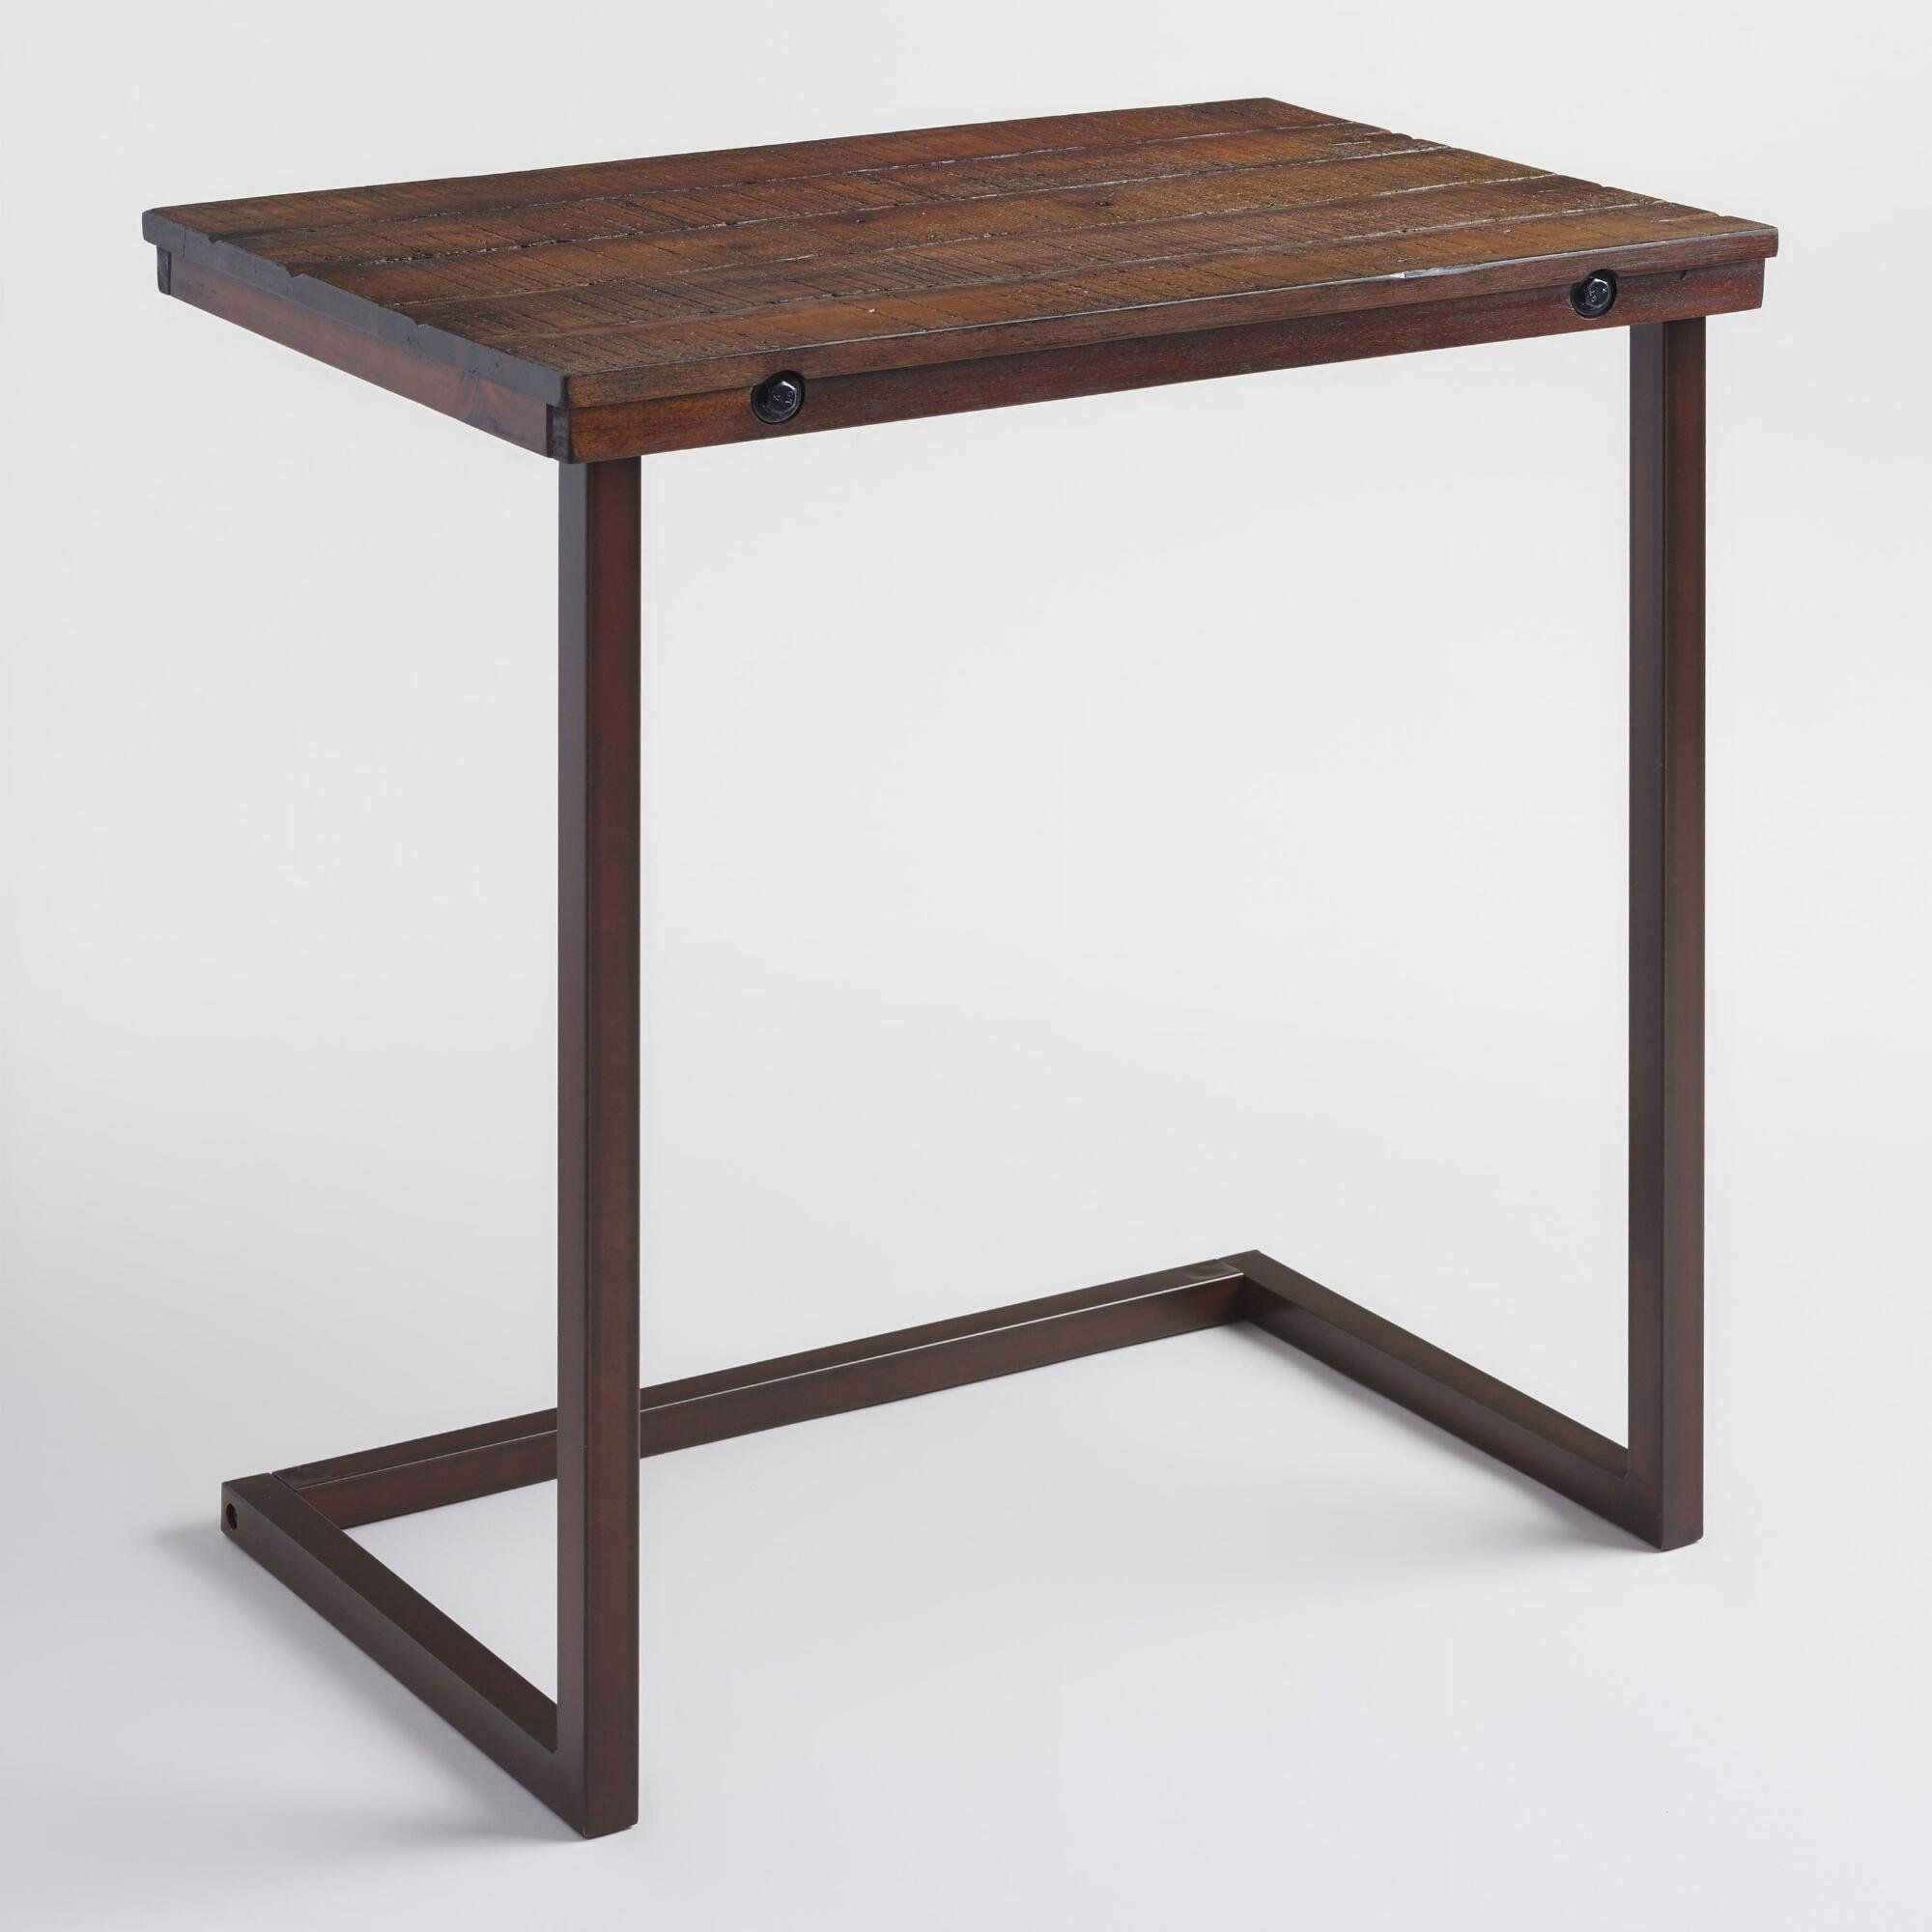 World Market Laptop Table Recliner In 2020 Laptop Table Wood And Metal Furniture